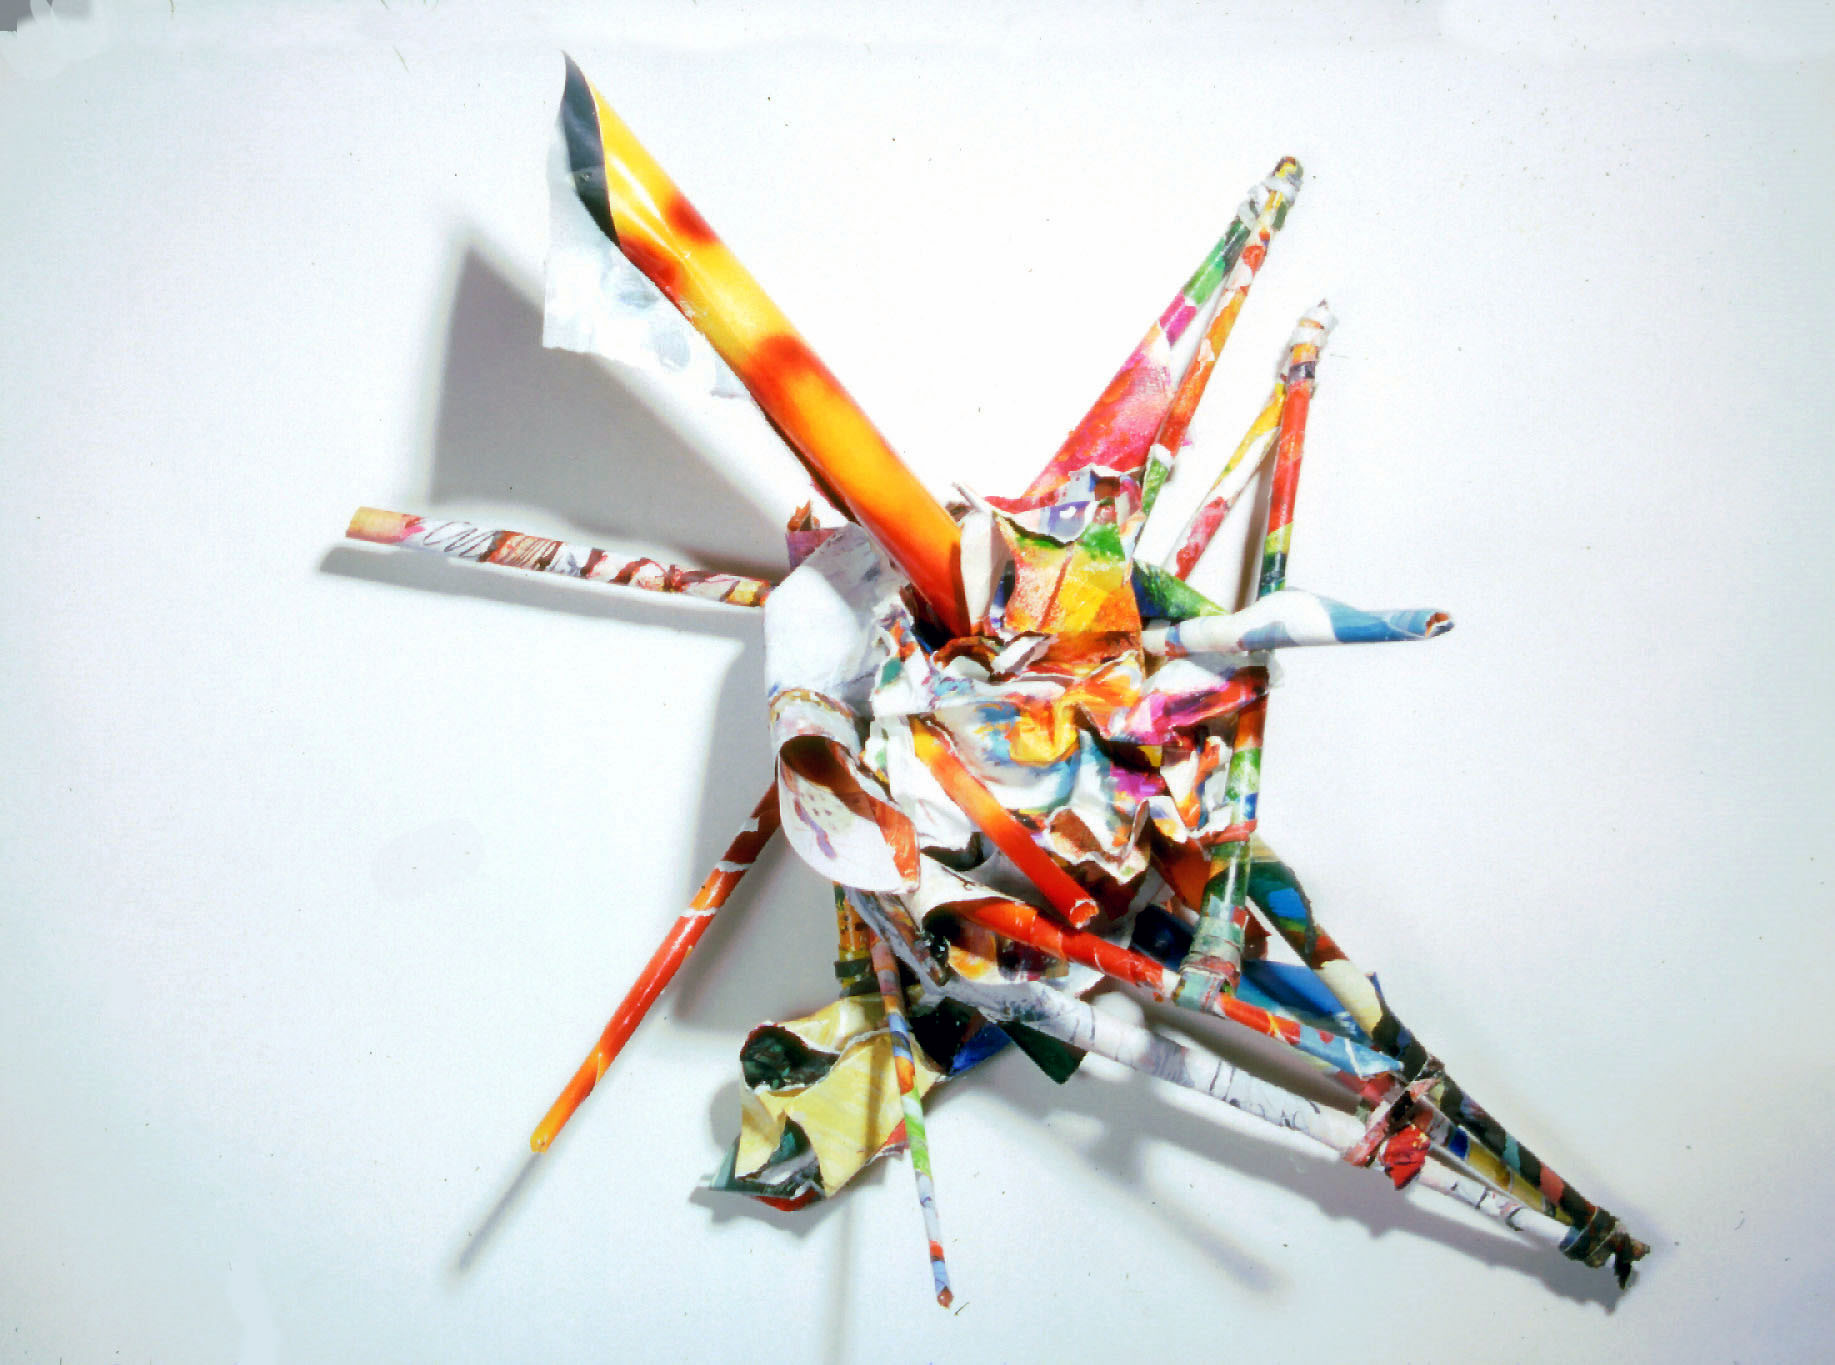 Untitled (Paper Sculpture)